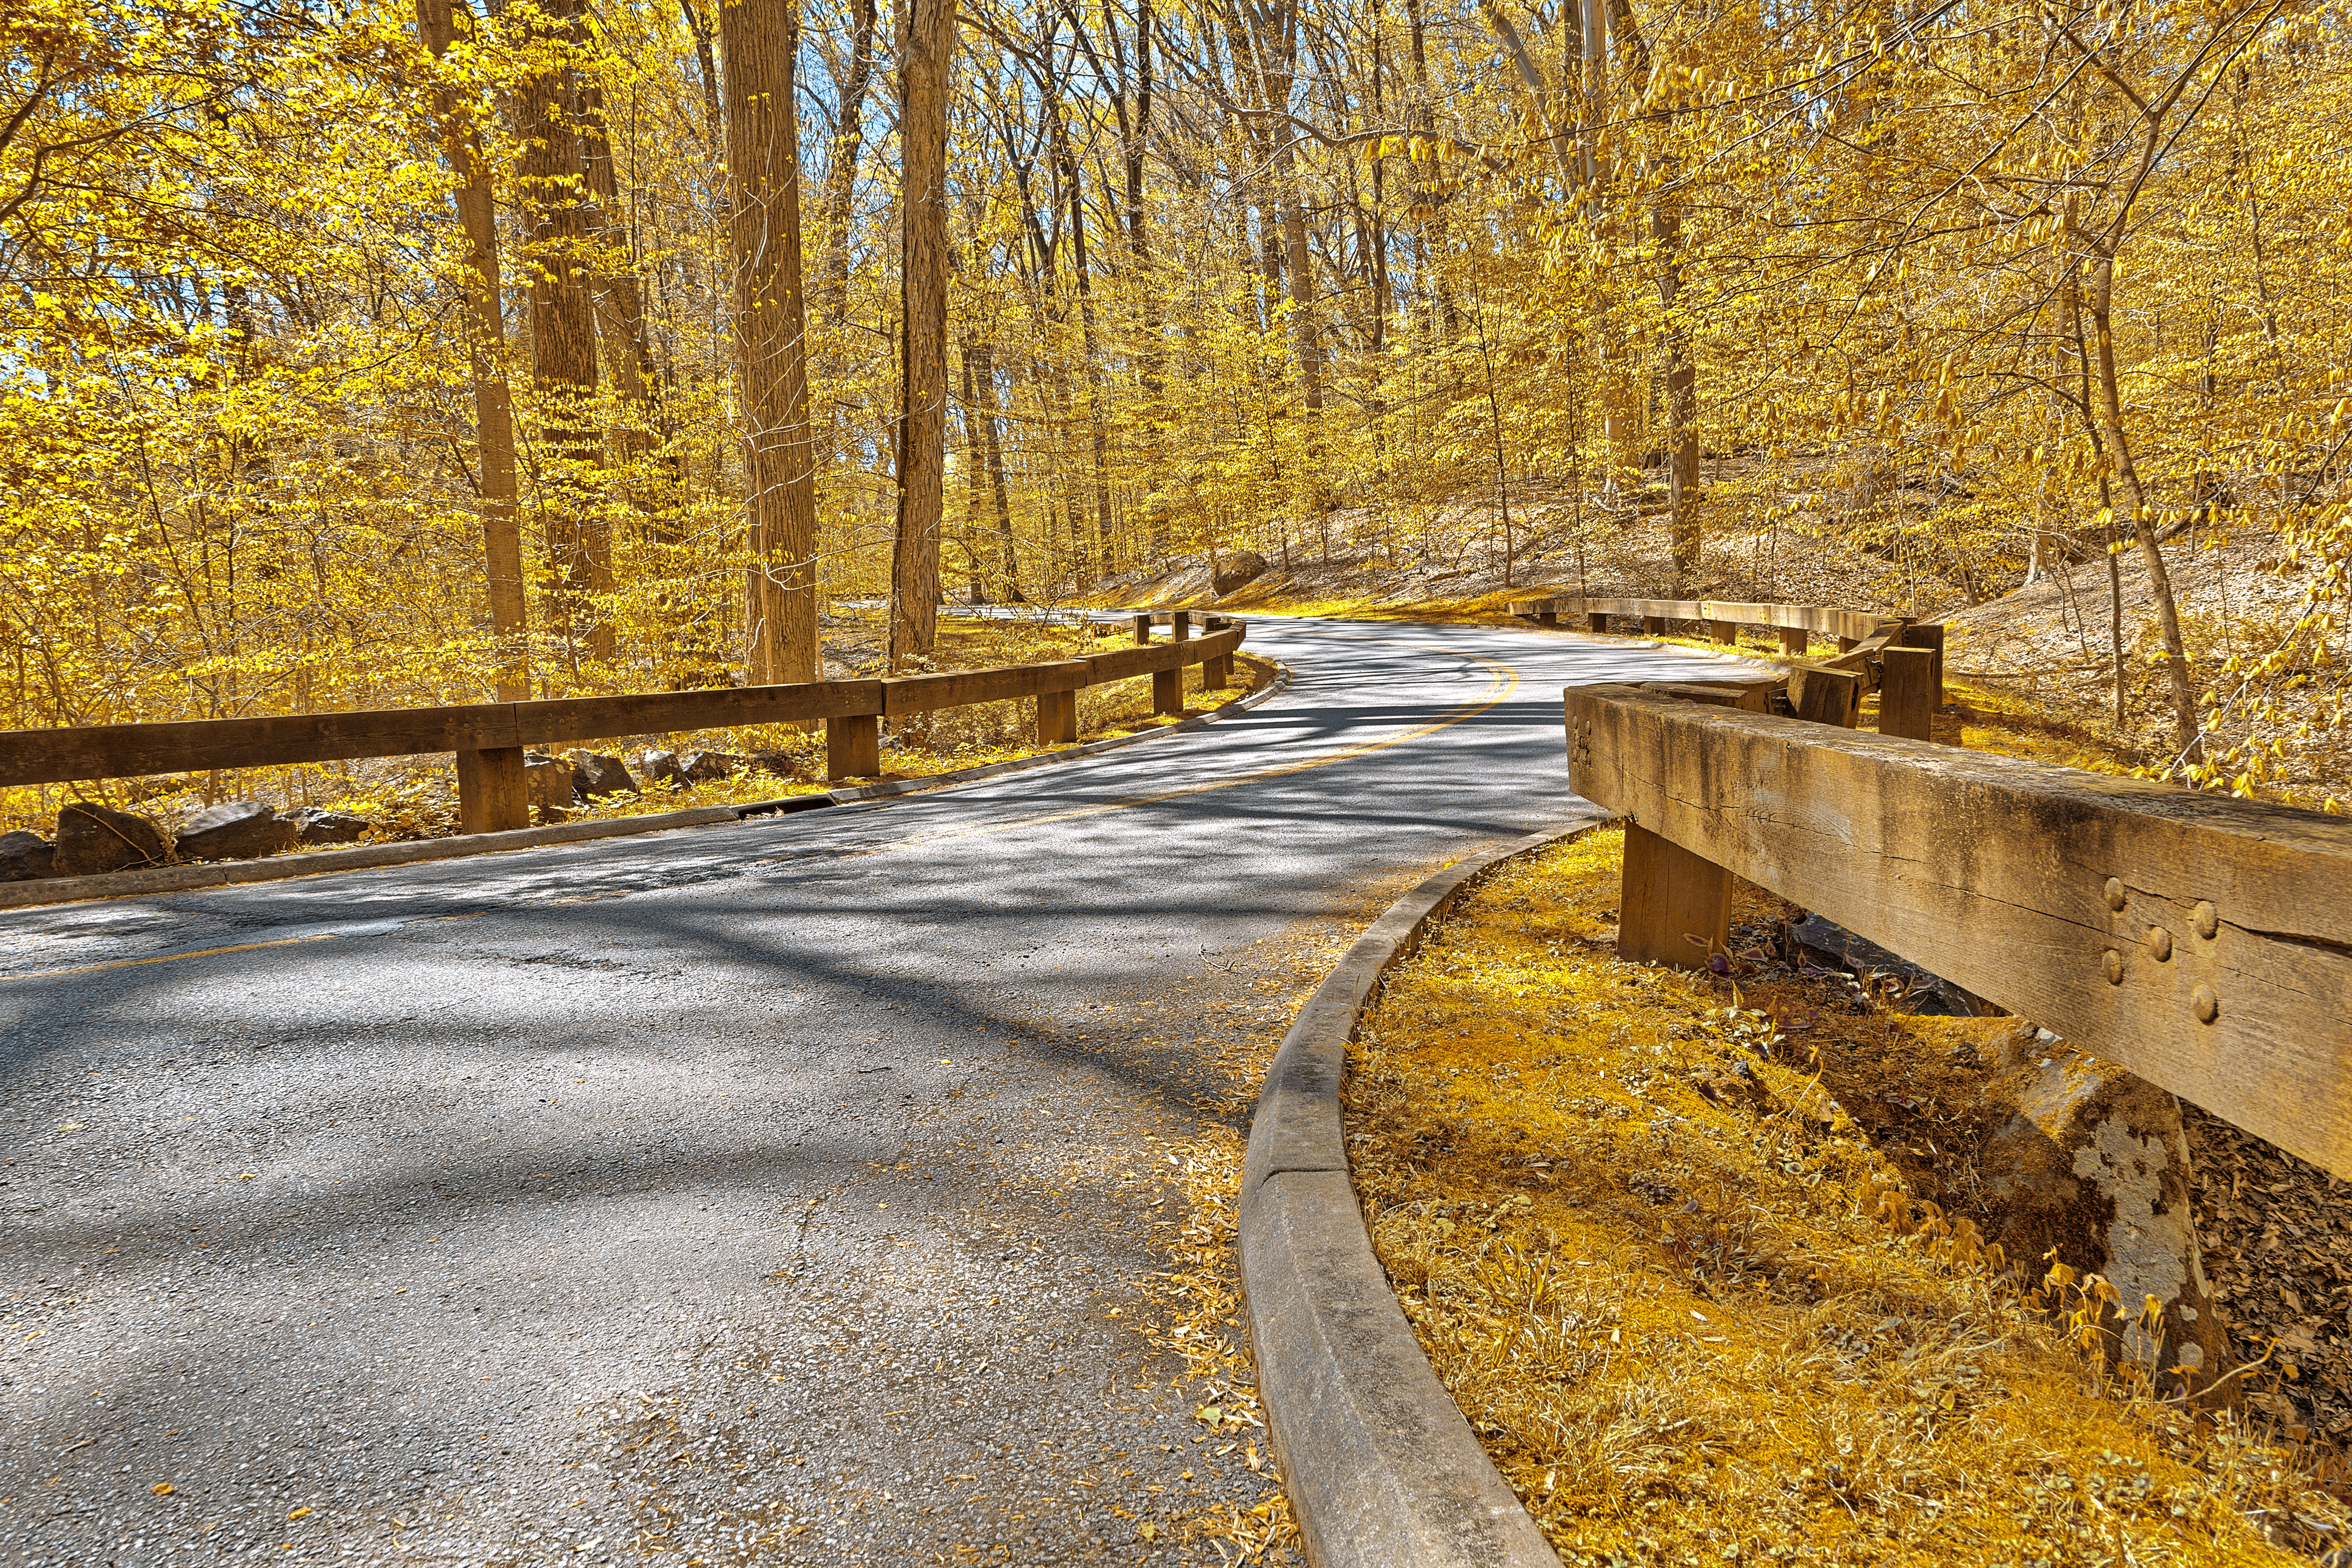 A paved road in the middle of a leafy park in the fall.